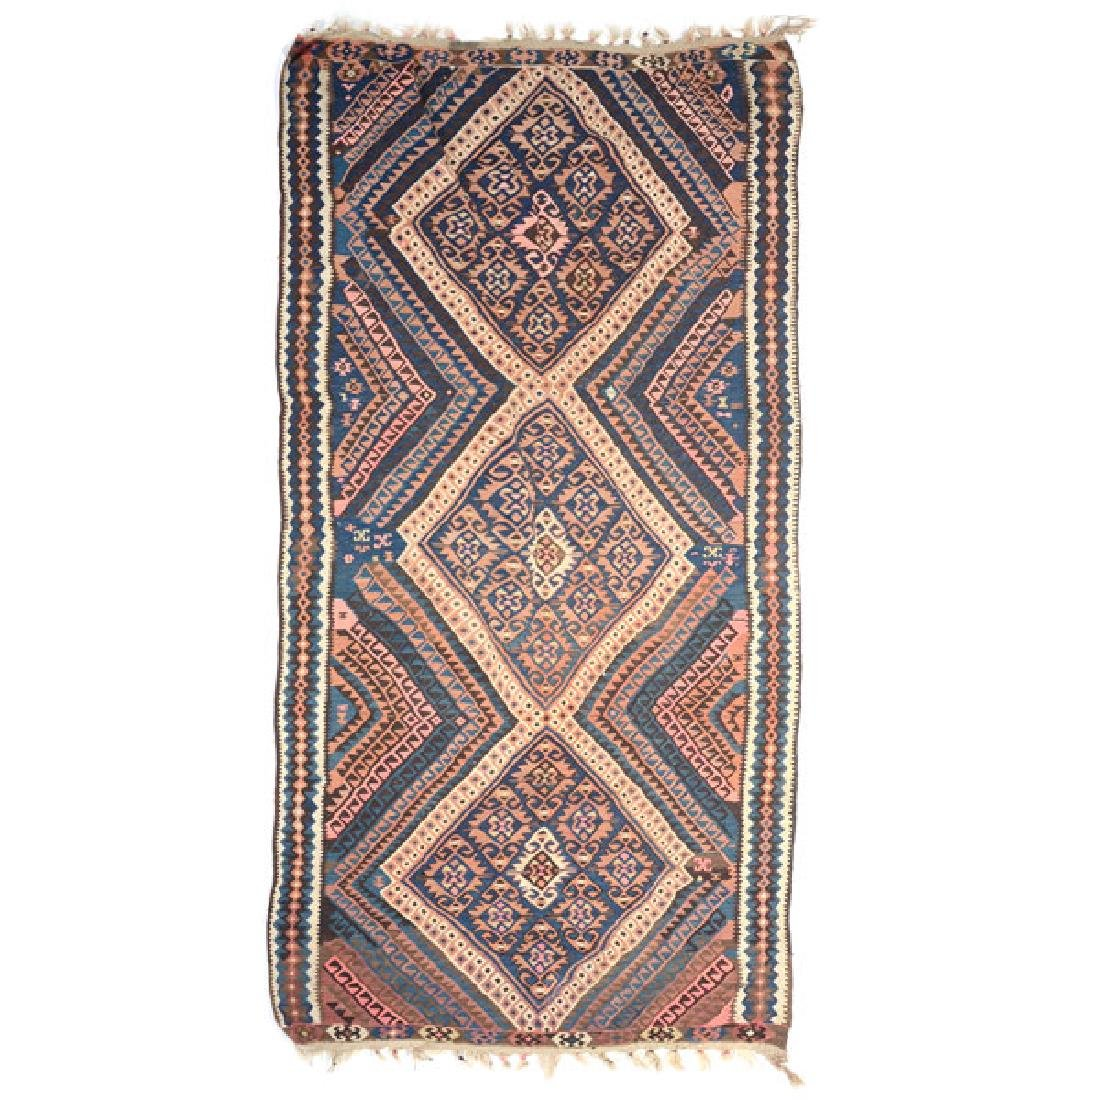 Qasqai Kilim Carpet: 4 feet 8 inches x 9 feet 11 inches